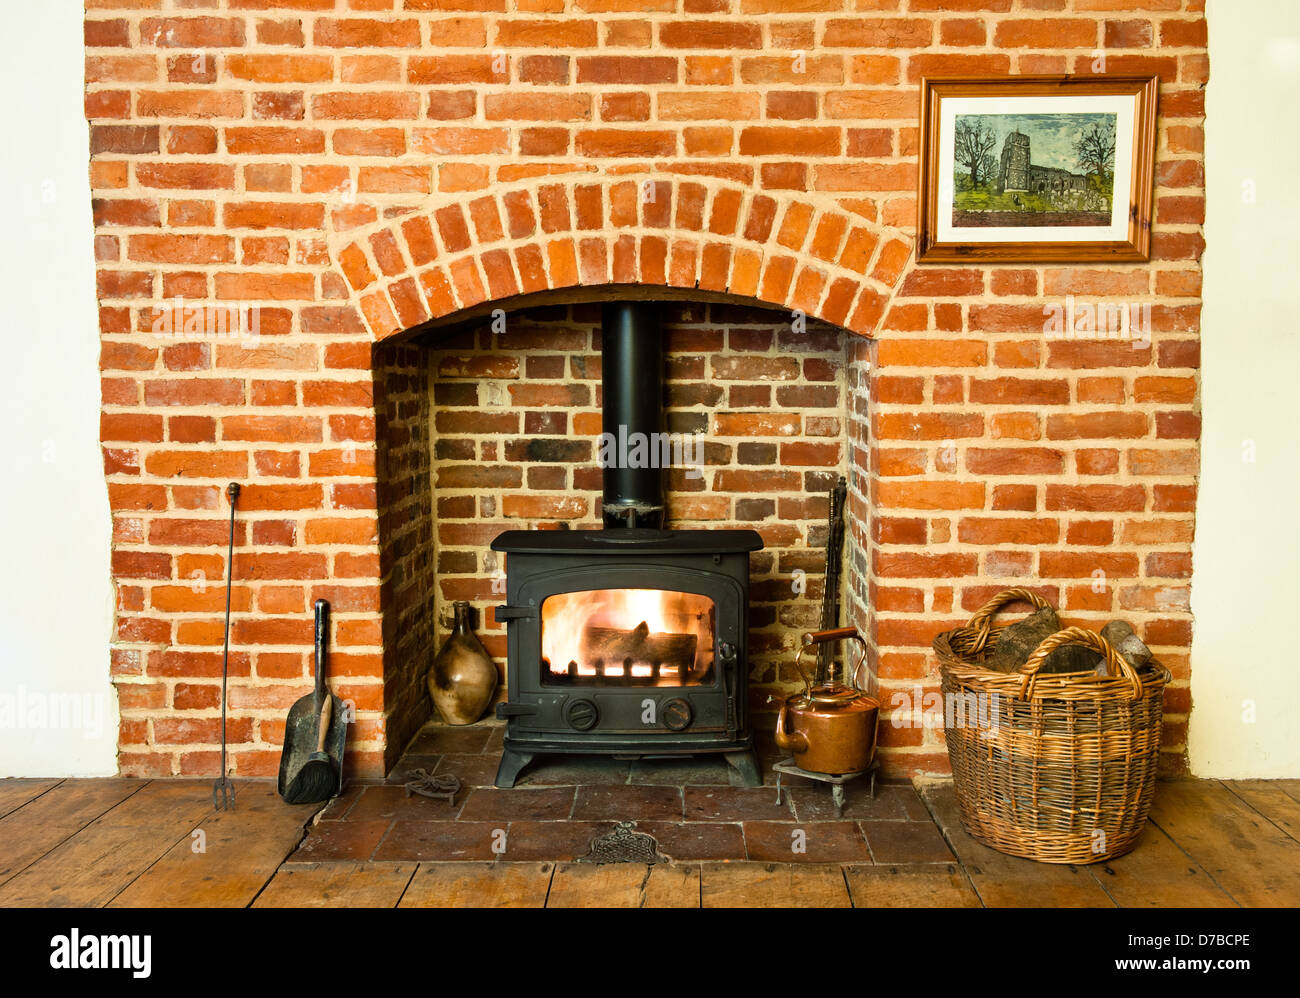 Traditional brickwork stove and fireplace. - Stock Image